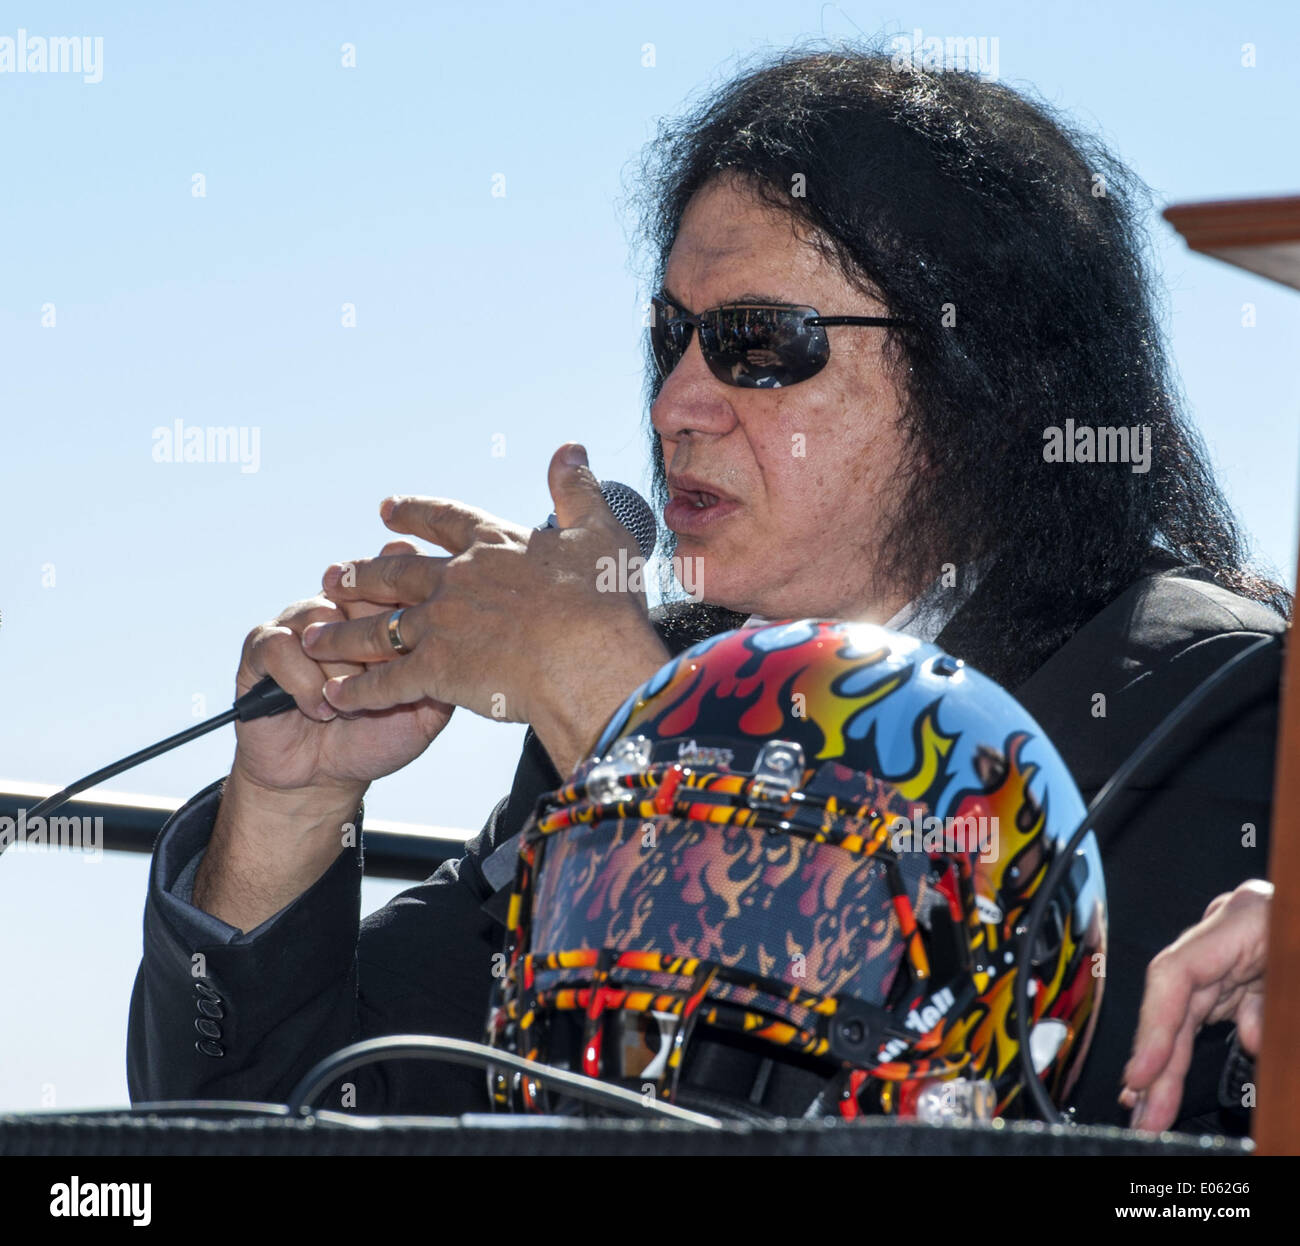 Anaheim, California, USA. 10th Mar, 2014. GENE SIMMONS talks about the new LA Kiss Arena Football team on Monday morning at Honda Center. The newly formed LA Kiss, Arena Football's newest team, held their first media event at The Honda Center on Monday morning, March 10, 2014, in Anaheim. The LA Kiss, named after famed rock and roll band, Kiss, boasts two members of the band as owners, Gene Simmons and Paul Stanley. The co-owners announced a free Kiss concert for all season ticket holders as part of a $99 dollar package. © David Bro/ZUMAPRESS.com/Alamy Live News - Stock Image